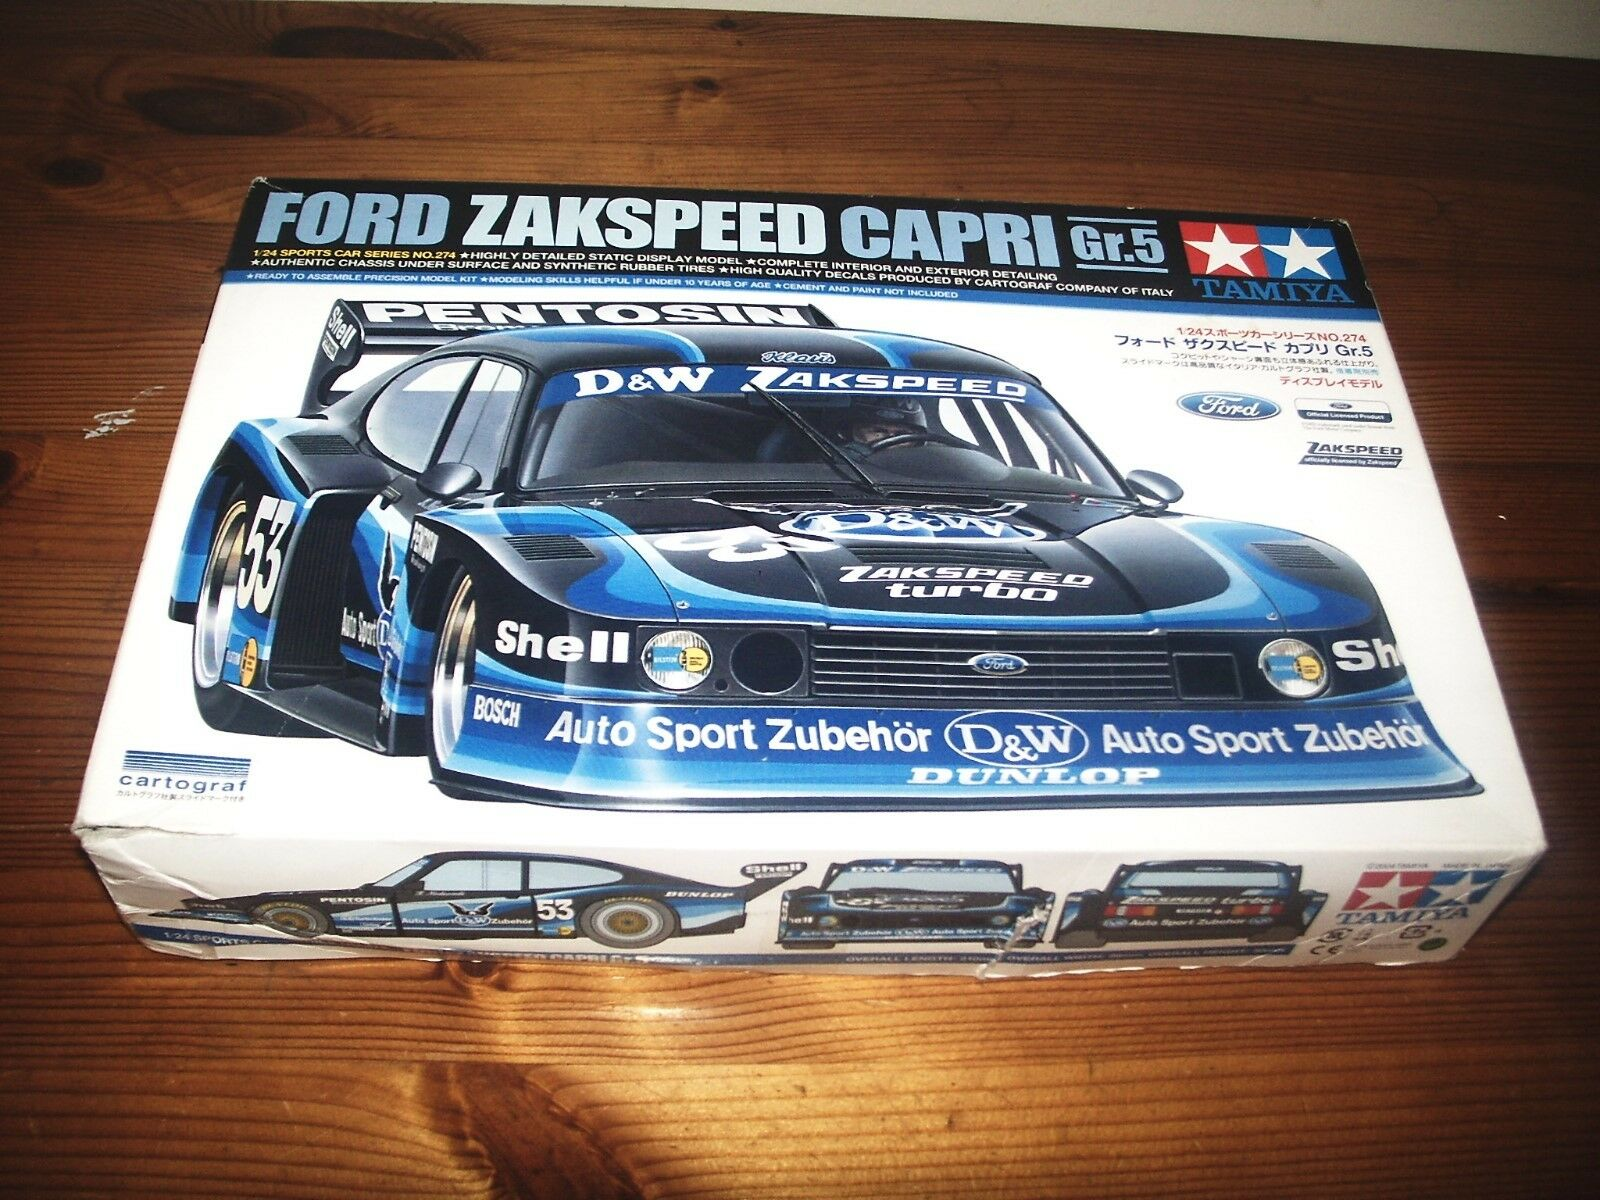 TAMIYA 1 24 FORD ZAKSPEED CAPRI GR.5  MODEL KIT - SPORTS CAR SERIES 24274